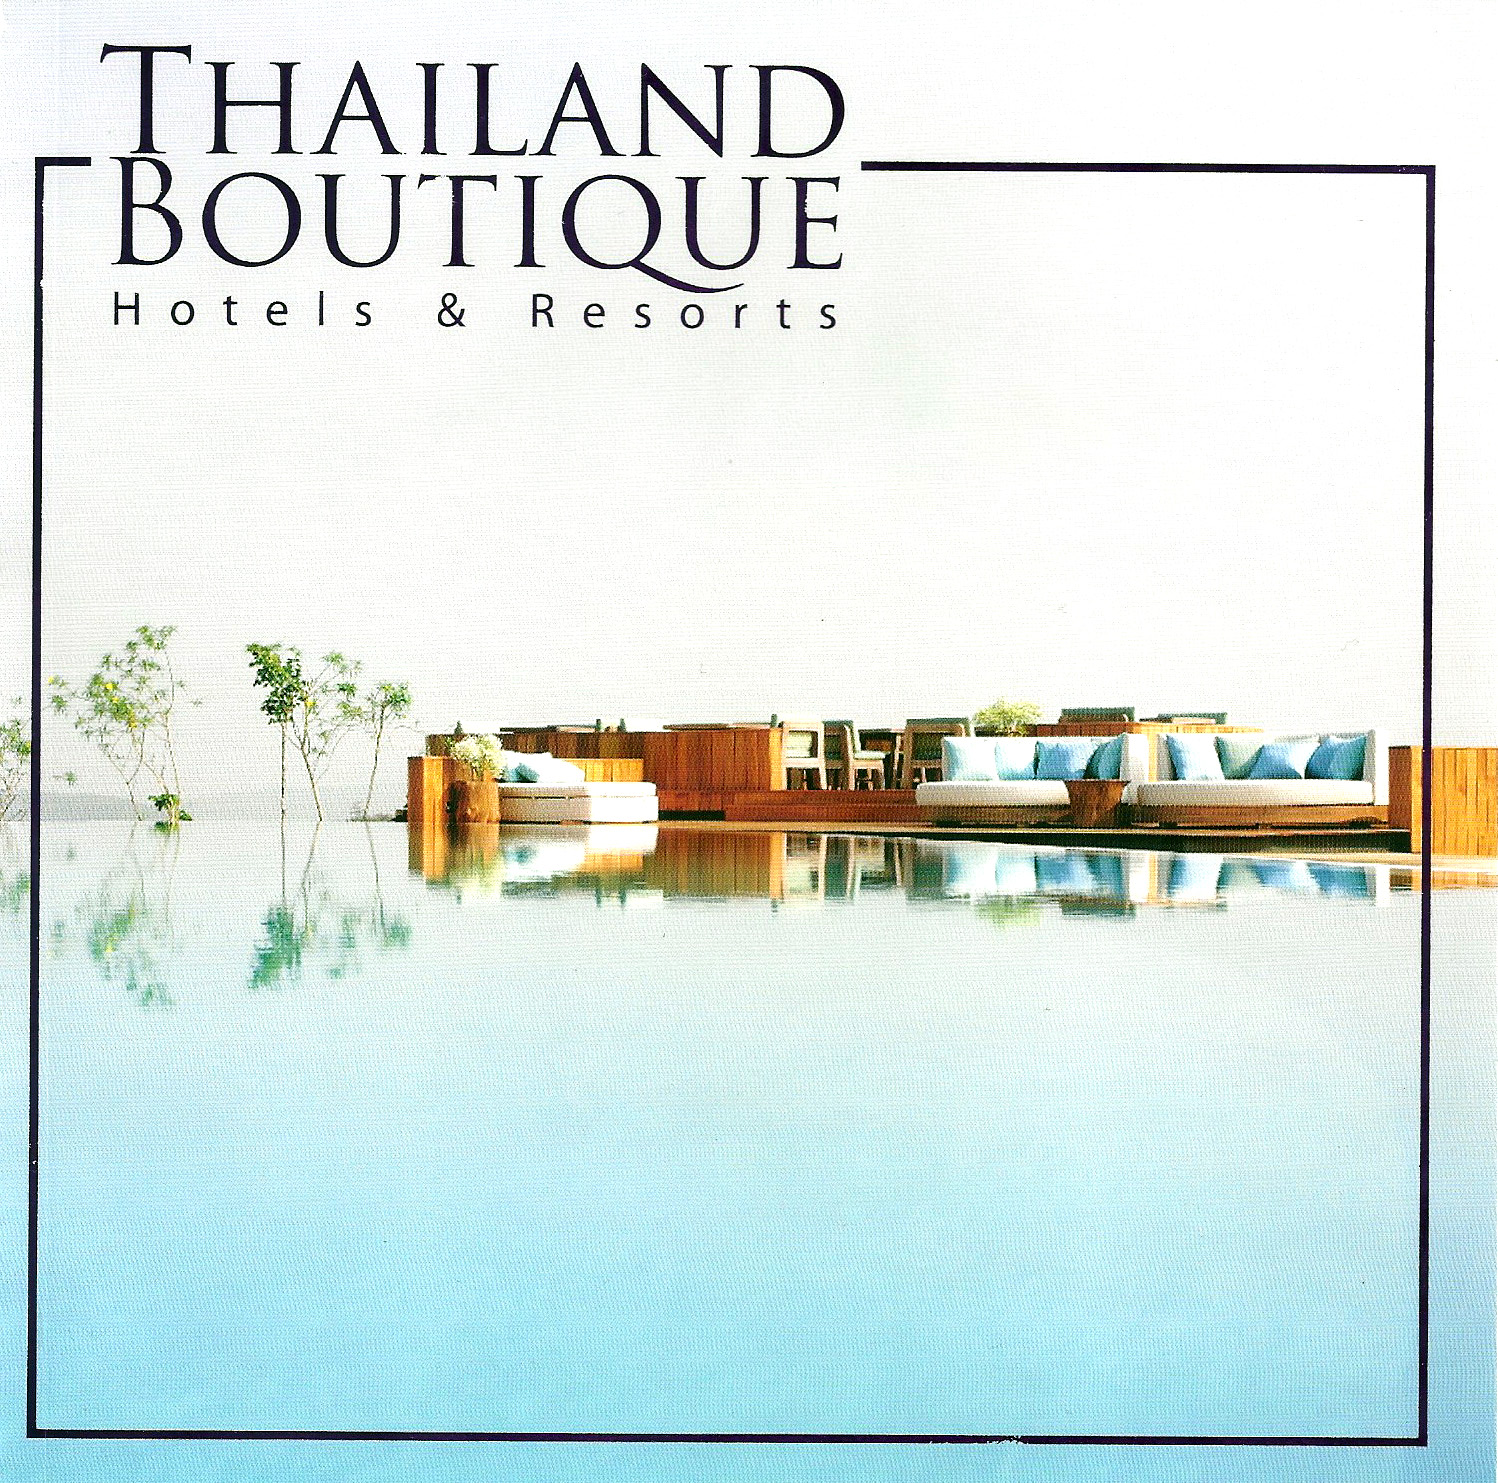 Thailand Boutique Hotels & Resorts Khao san road